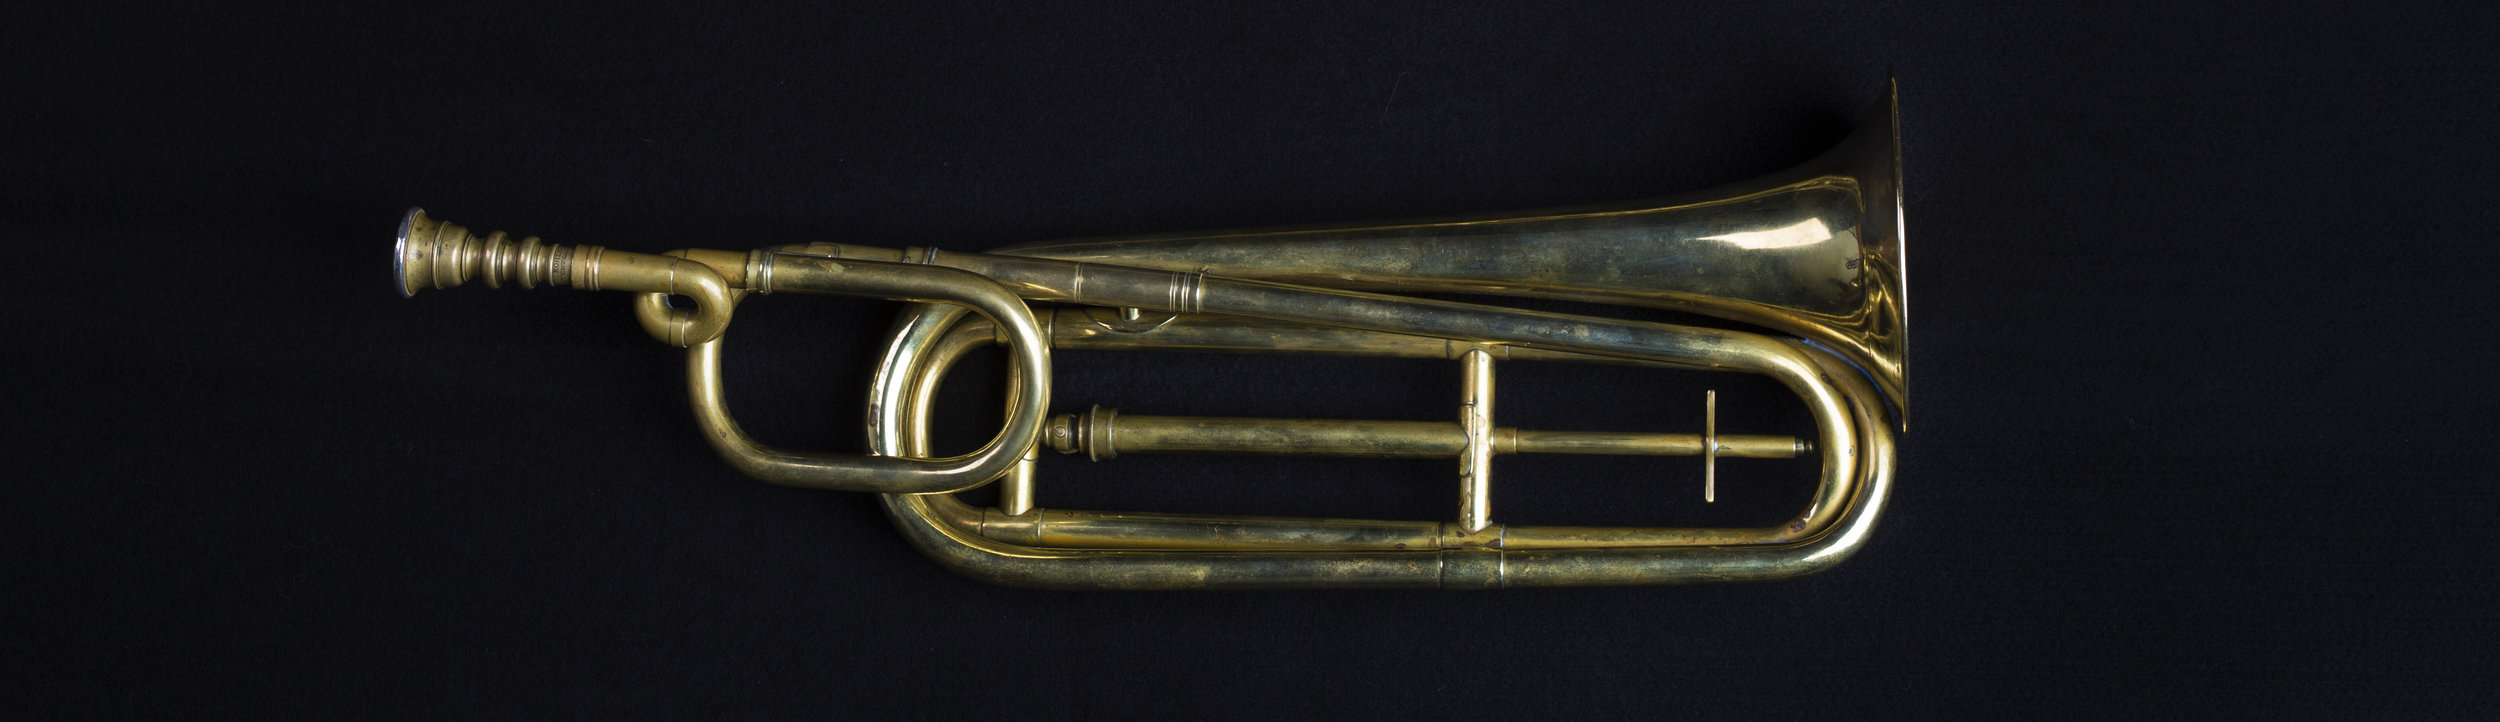 Short Model Slide Trumpet, Frederick Pace, circa 1840